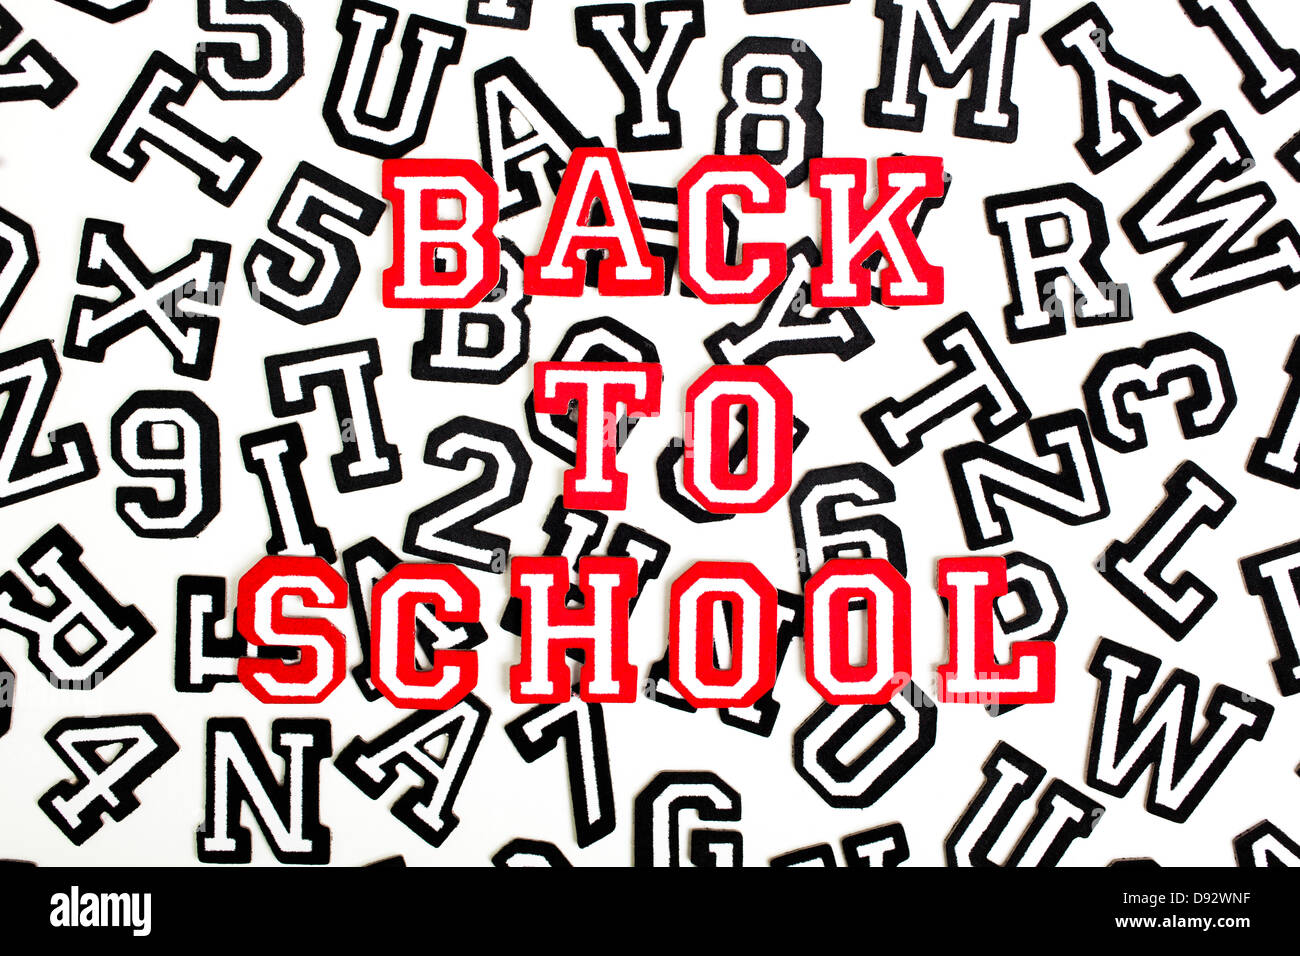 Outlined Letters Stock Photos & Outlined Letters Stock Images - Alamy